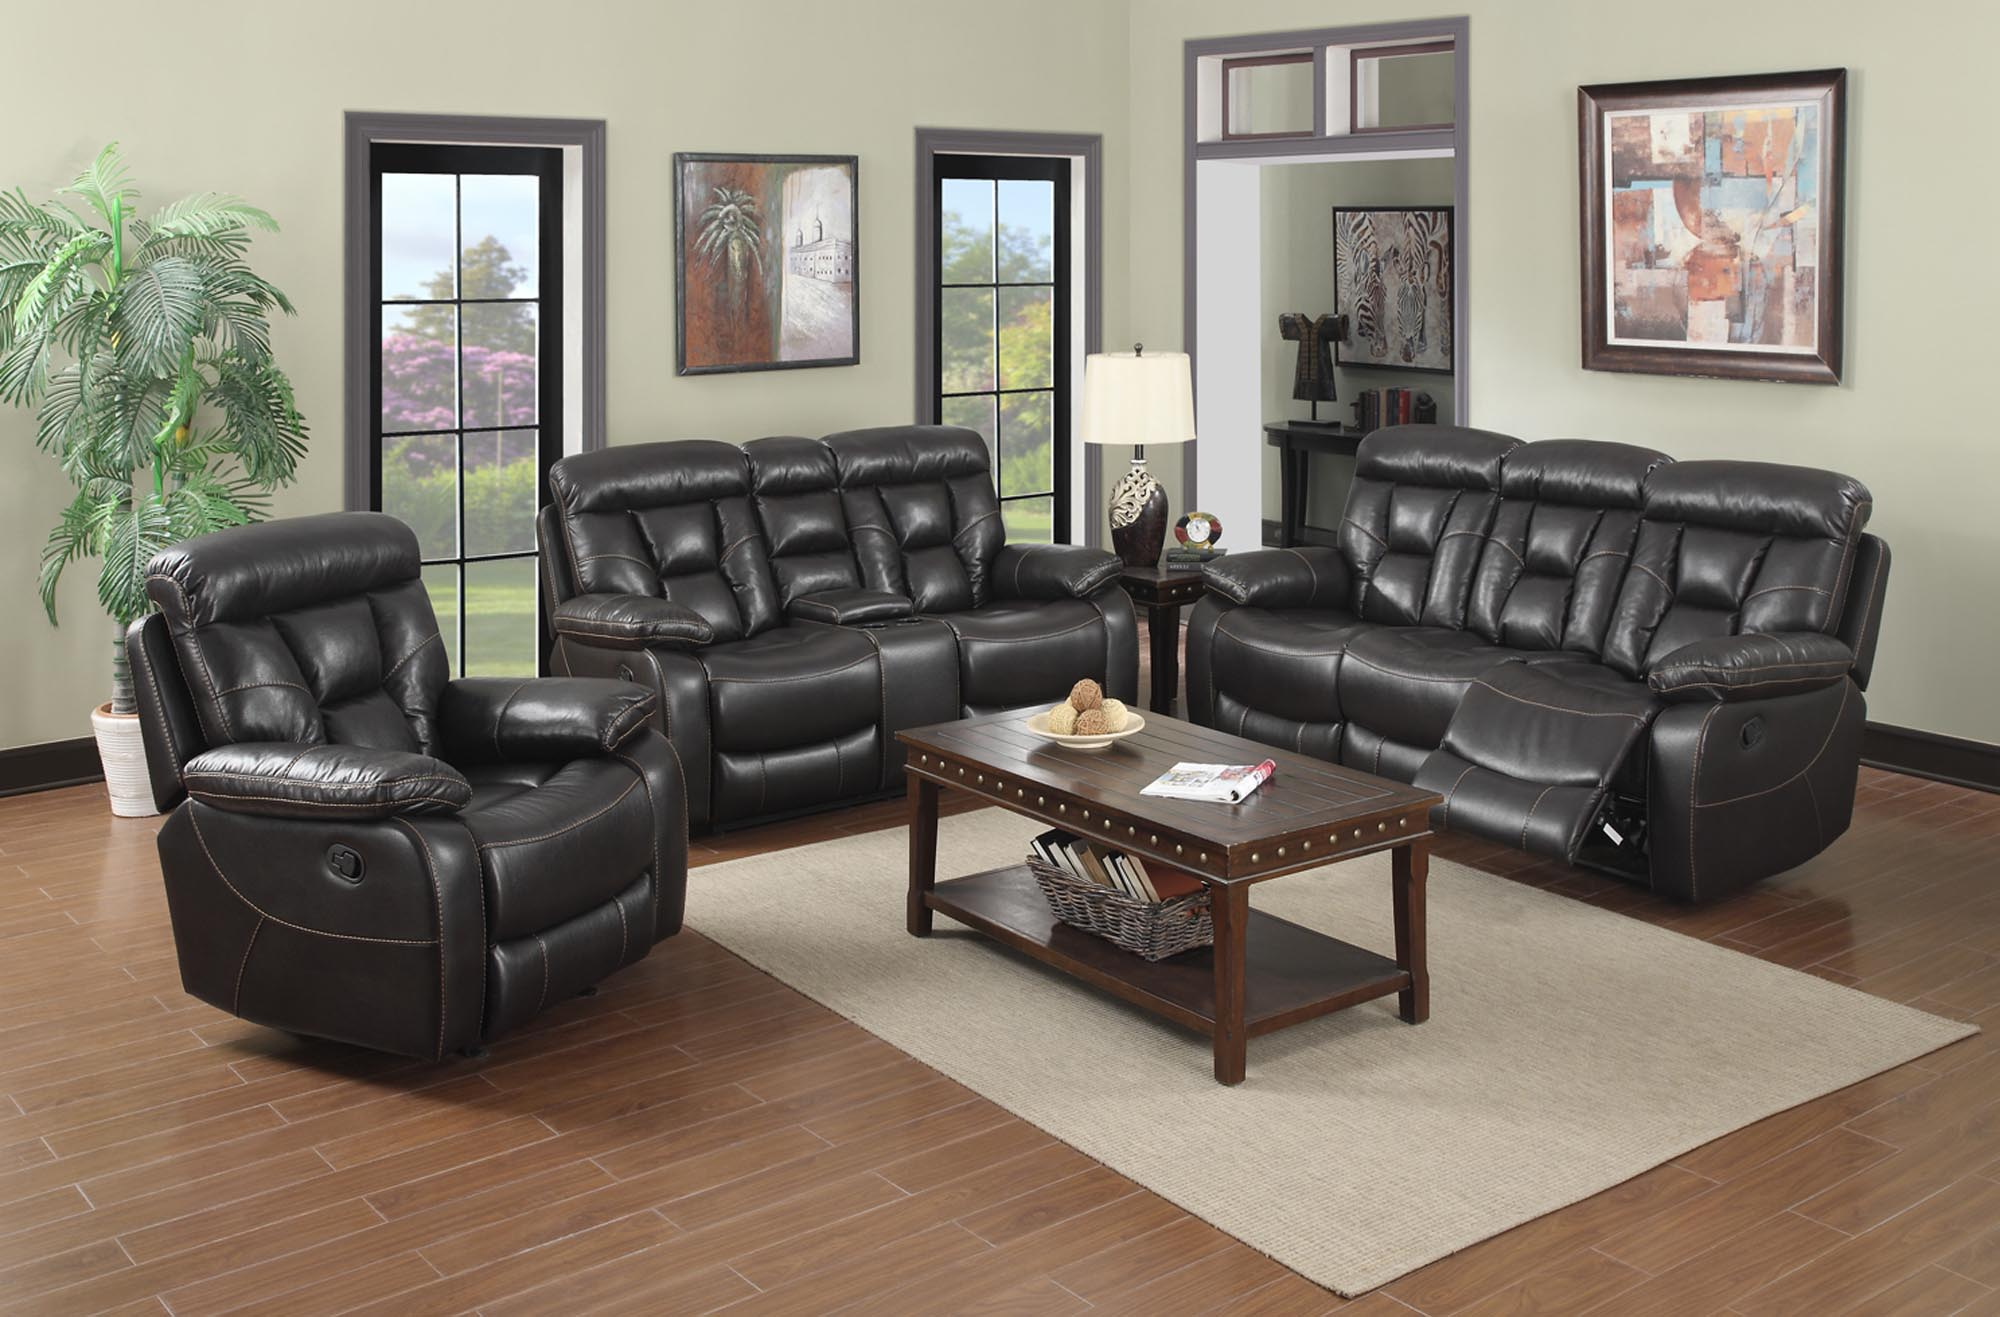 Black Faux Leather Reclining Living Room Set